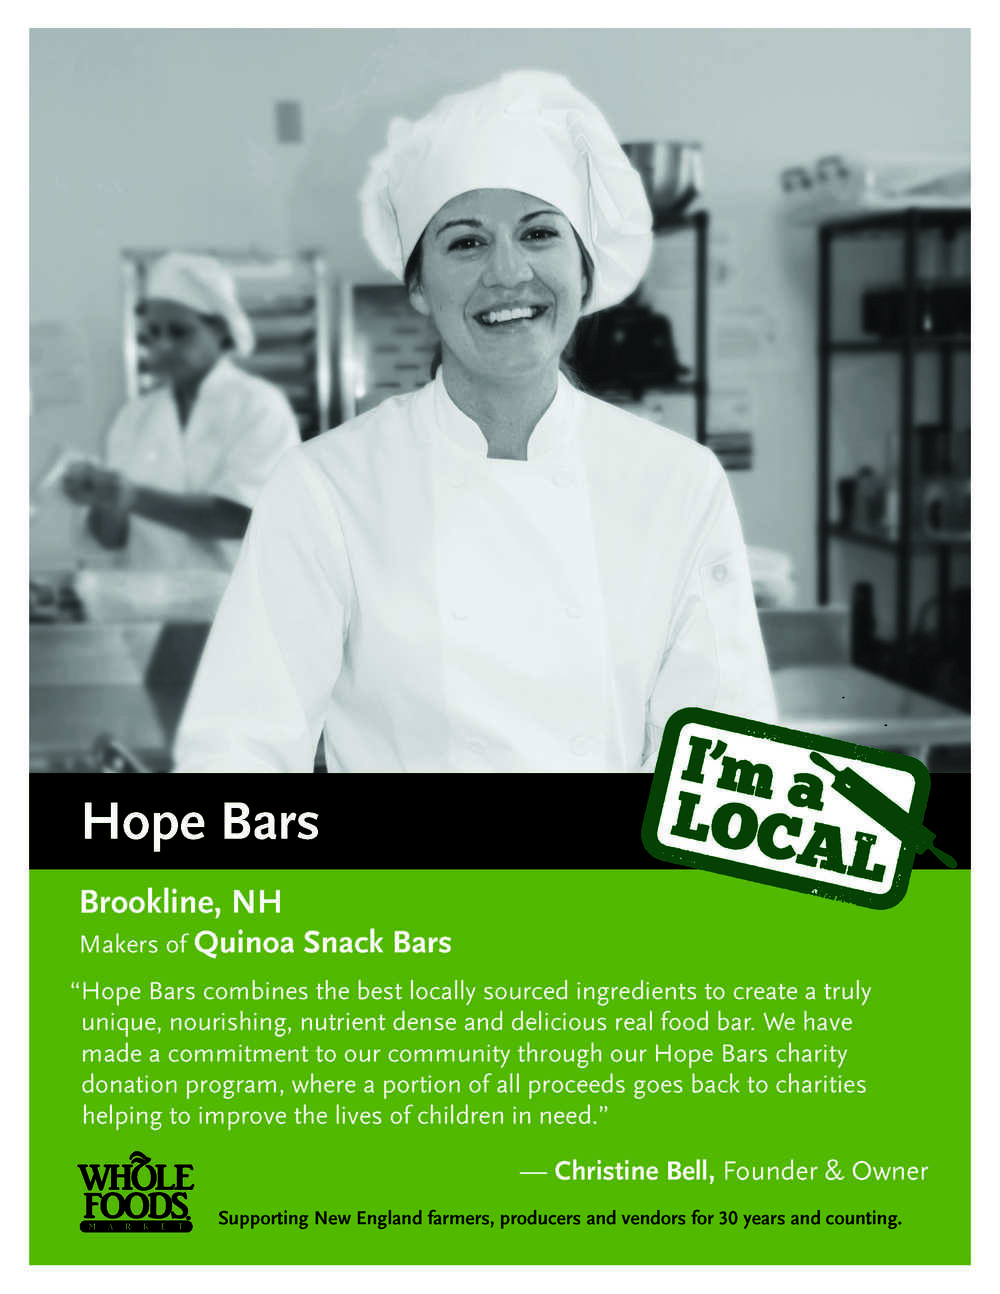 Hope Bars Whole Foods Christine Bell